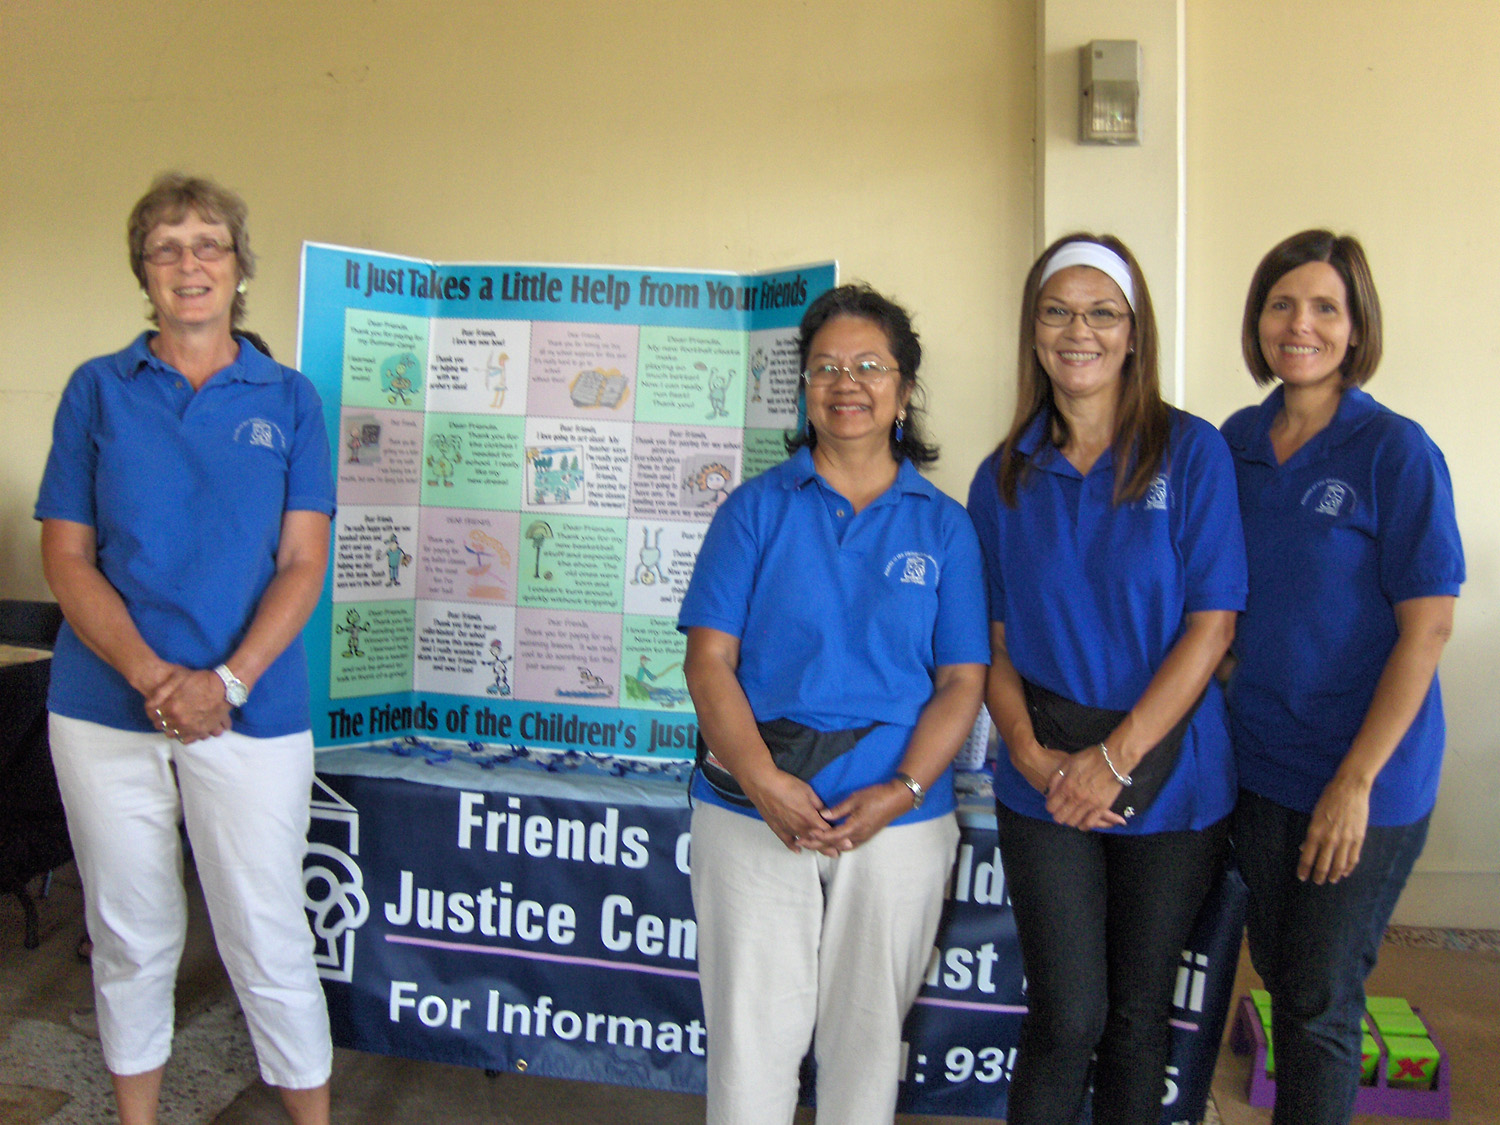 This photo shows Staff and volunteers at a community information Fair.